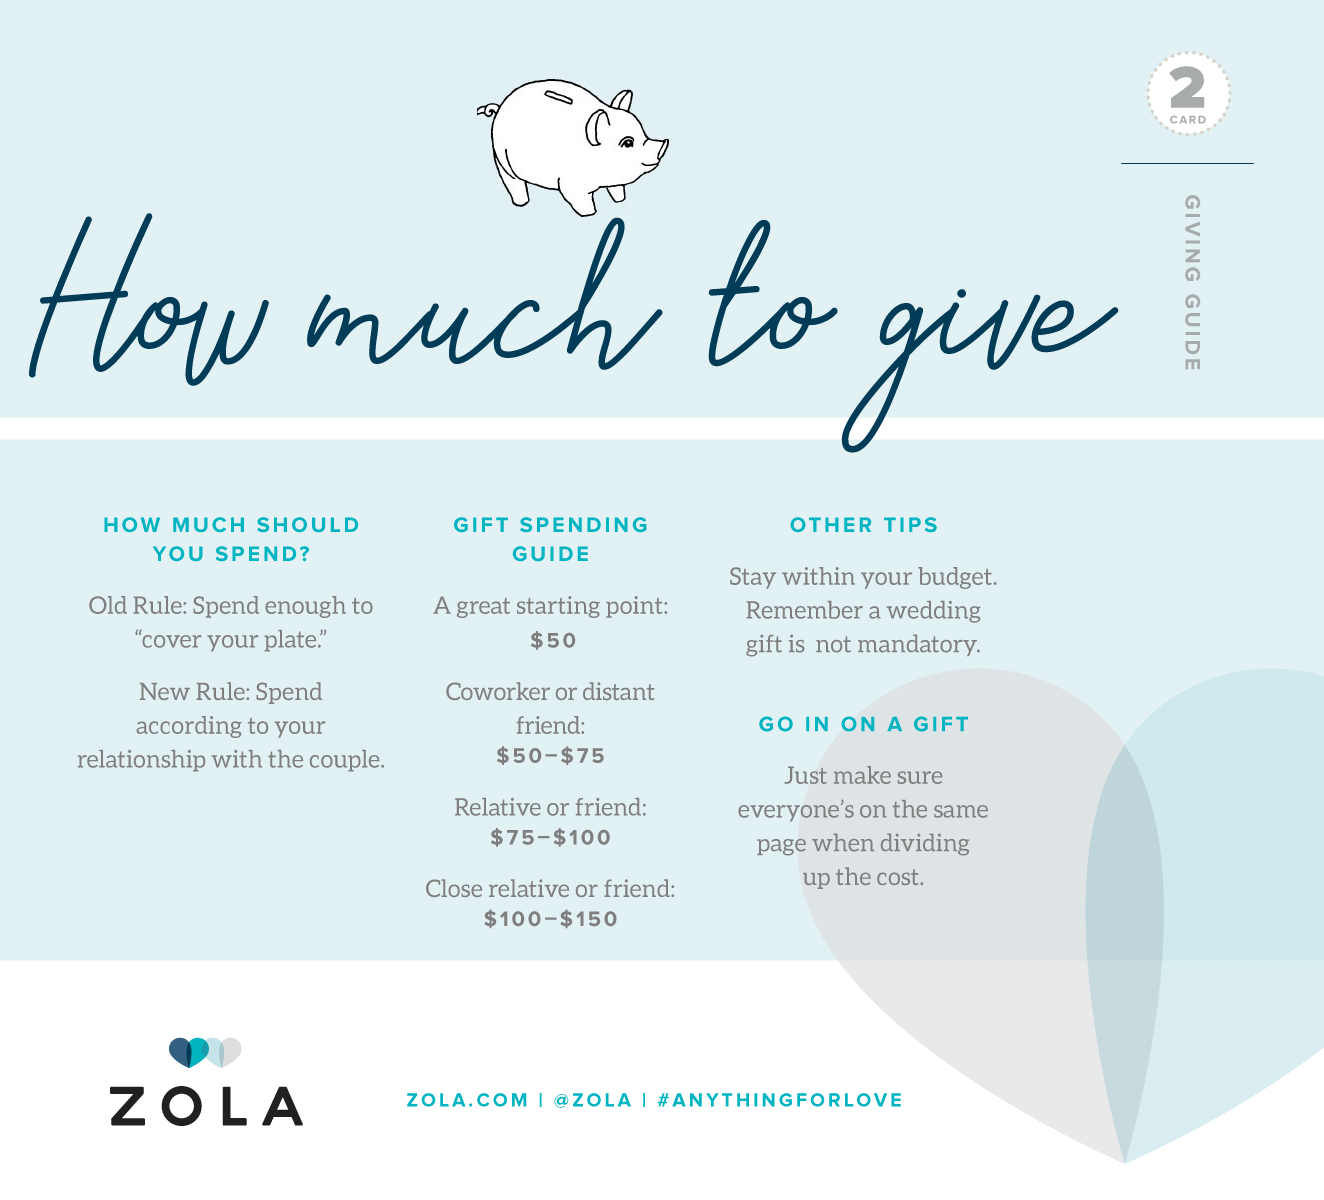 zola wedding registry, how much to spend on a wedding gift